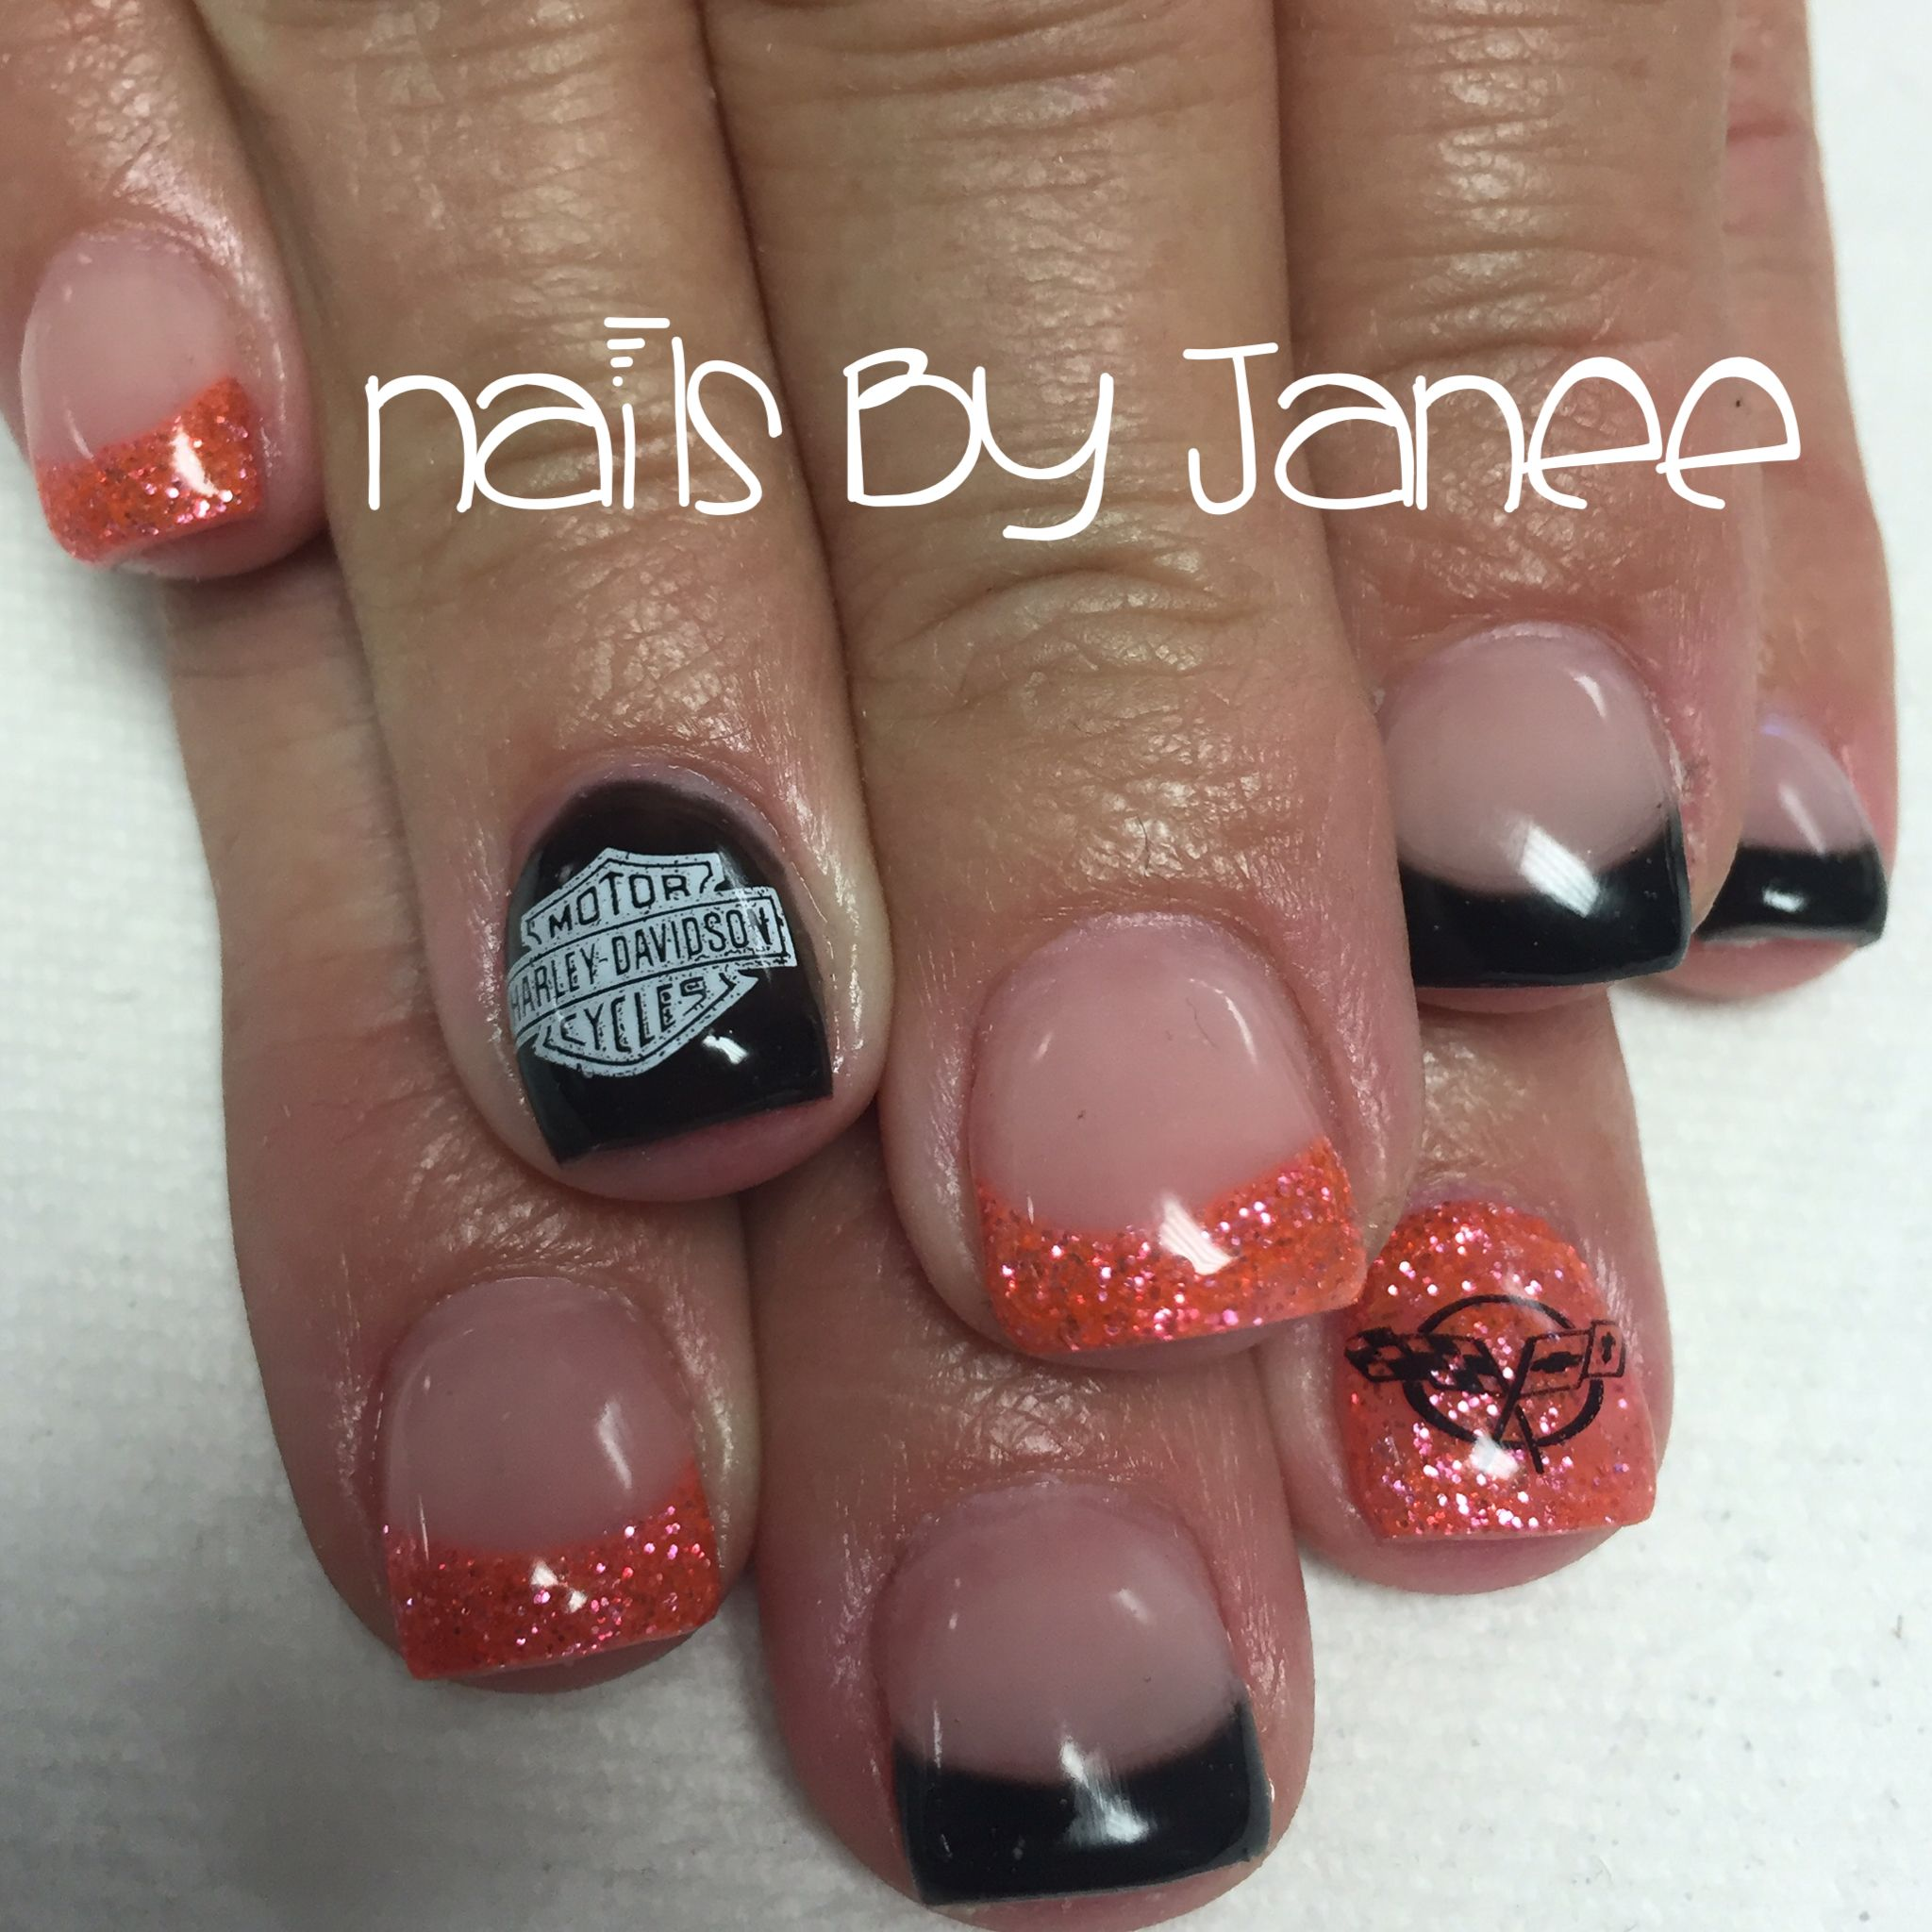 Harley Davidson Biker Nails Sassy Nails Sunflower Nails Tammy Nails